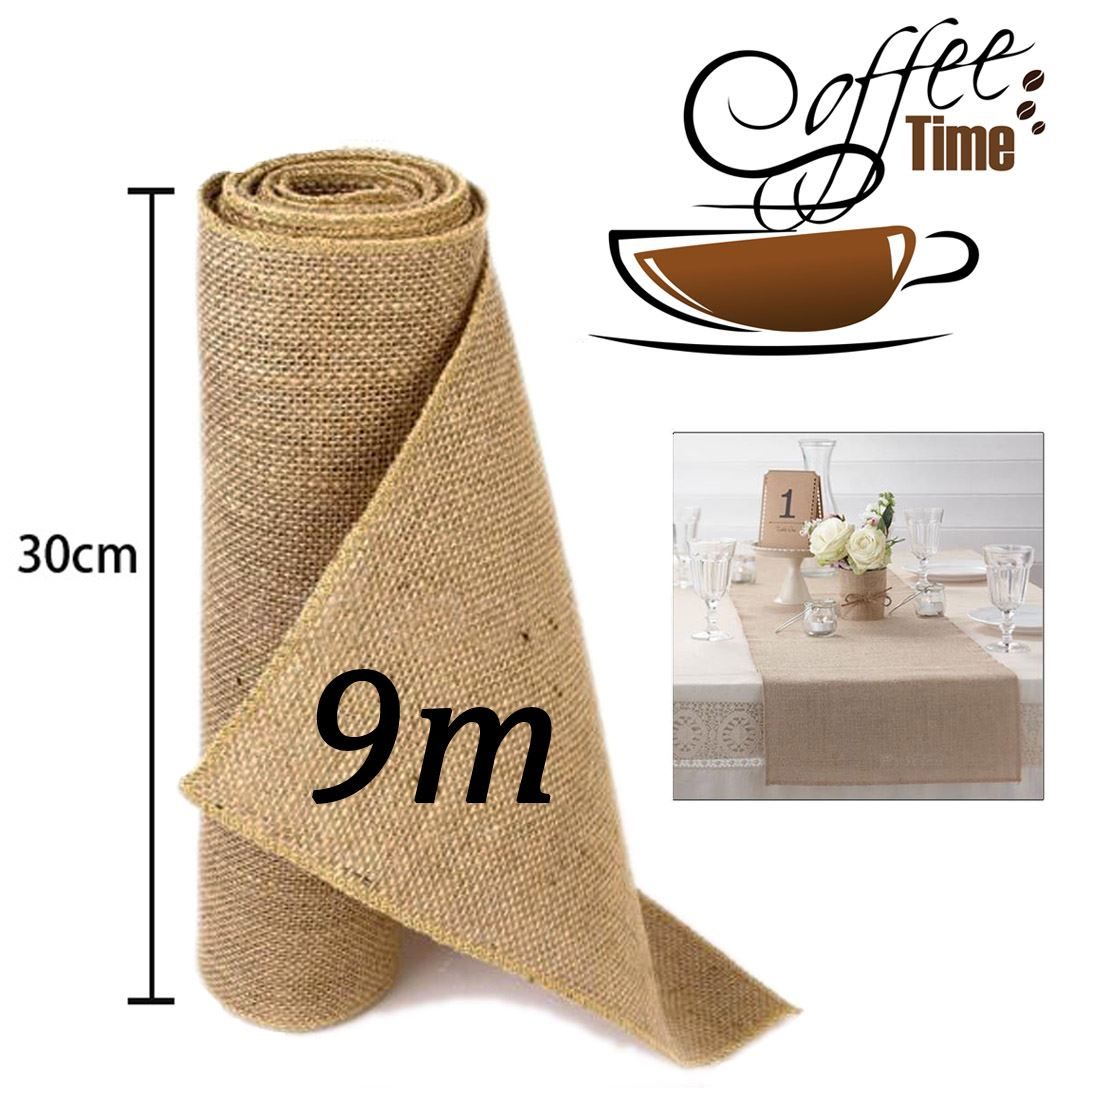 jjprime 9m hessian table runners sew edge wedding vintage shabby chic free bag ebay. Black Bedroom Furniture Sets. Home Design Ideas